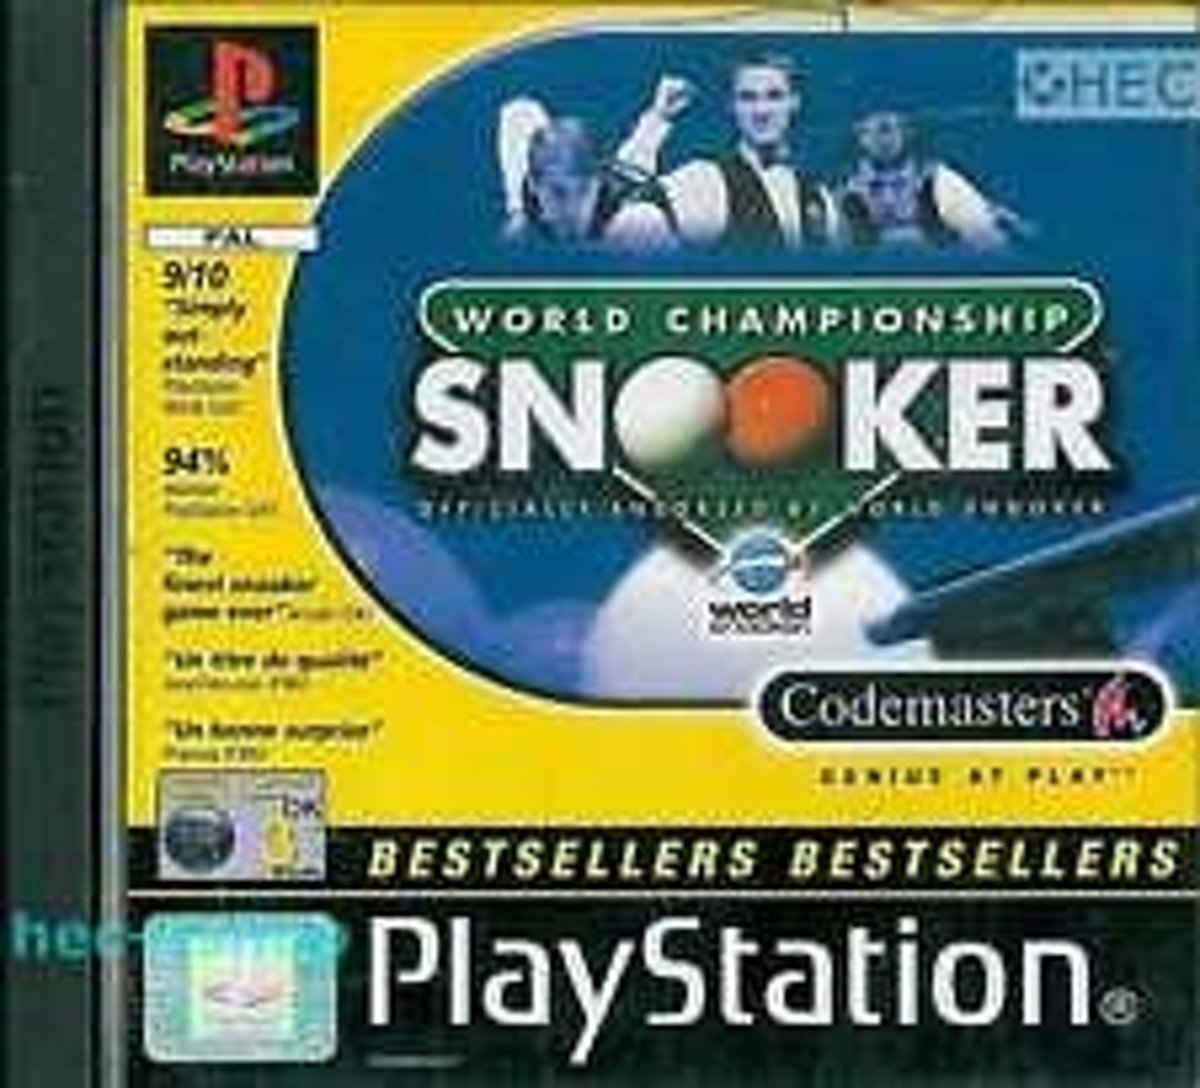 World Championship Snooker Bestseller